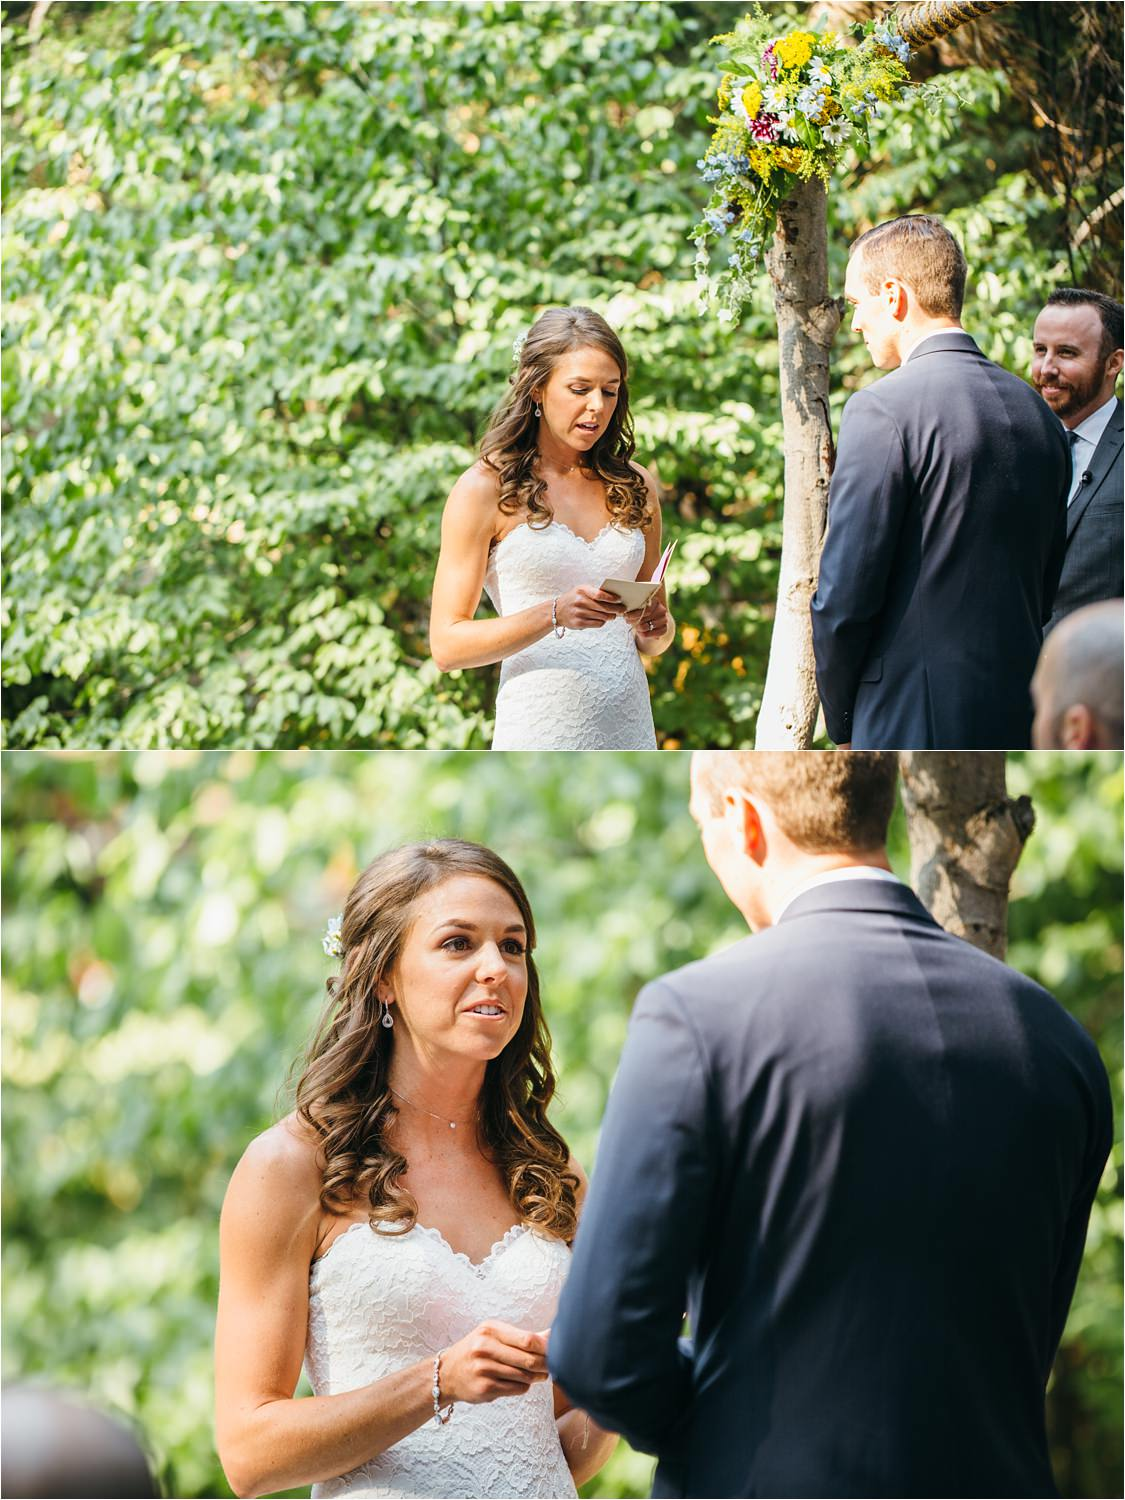 Bride reading Vows - I love you - Lake Arrowhead Wedding Photography - https://brittneyhannonphotography.com